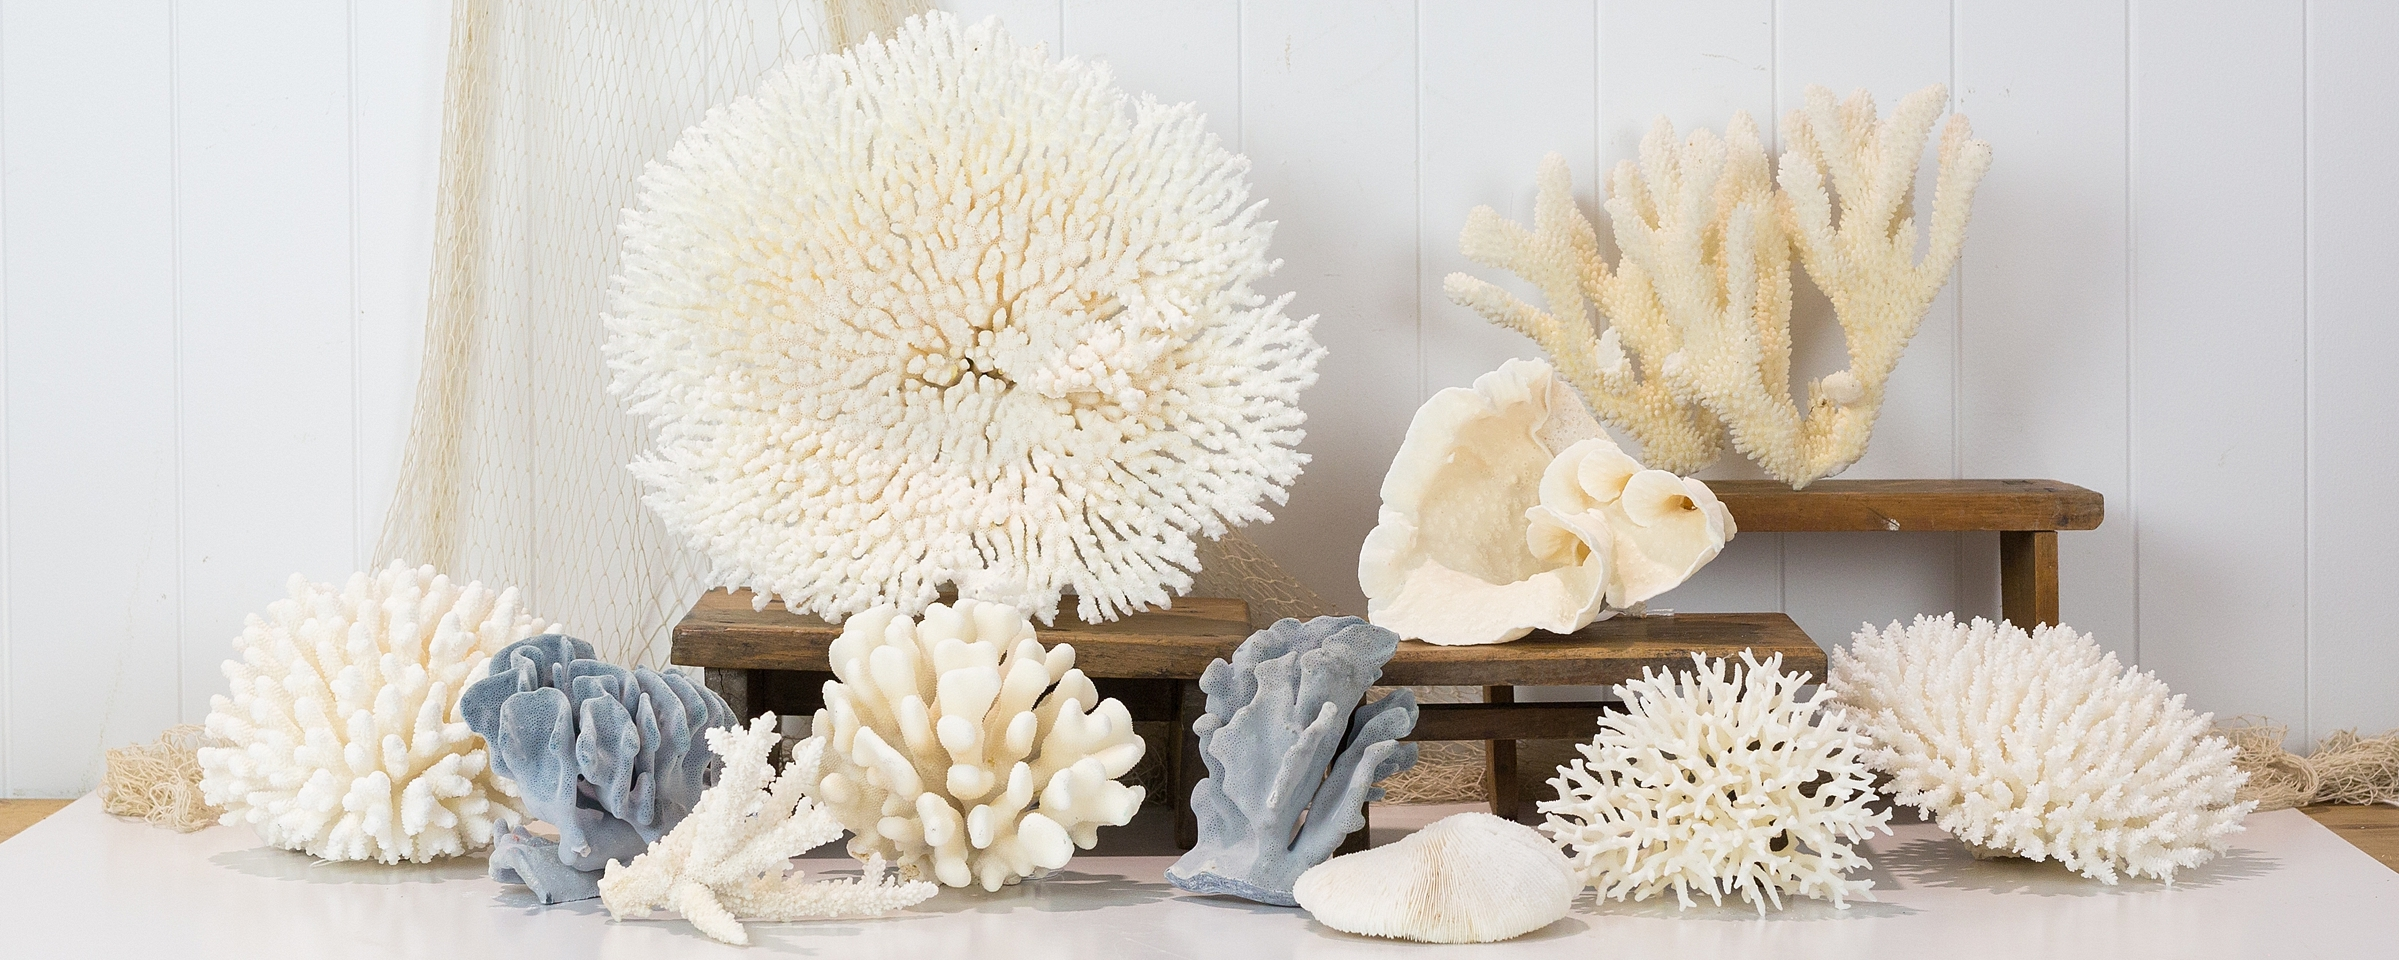 Giant Clam Shells & Coral